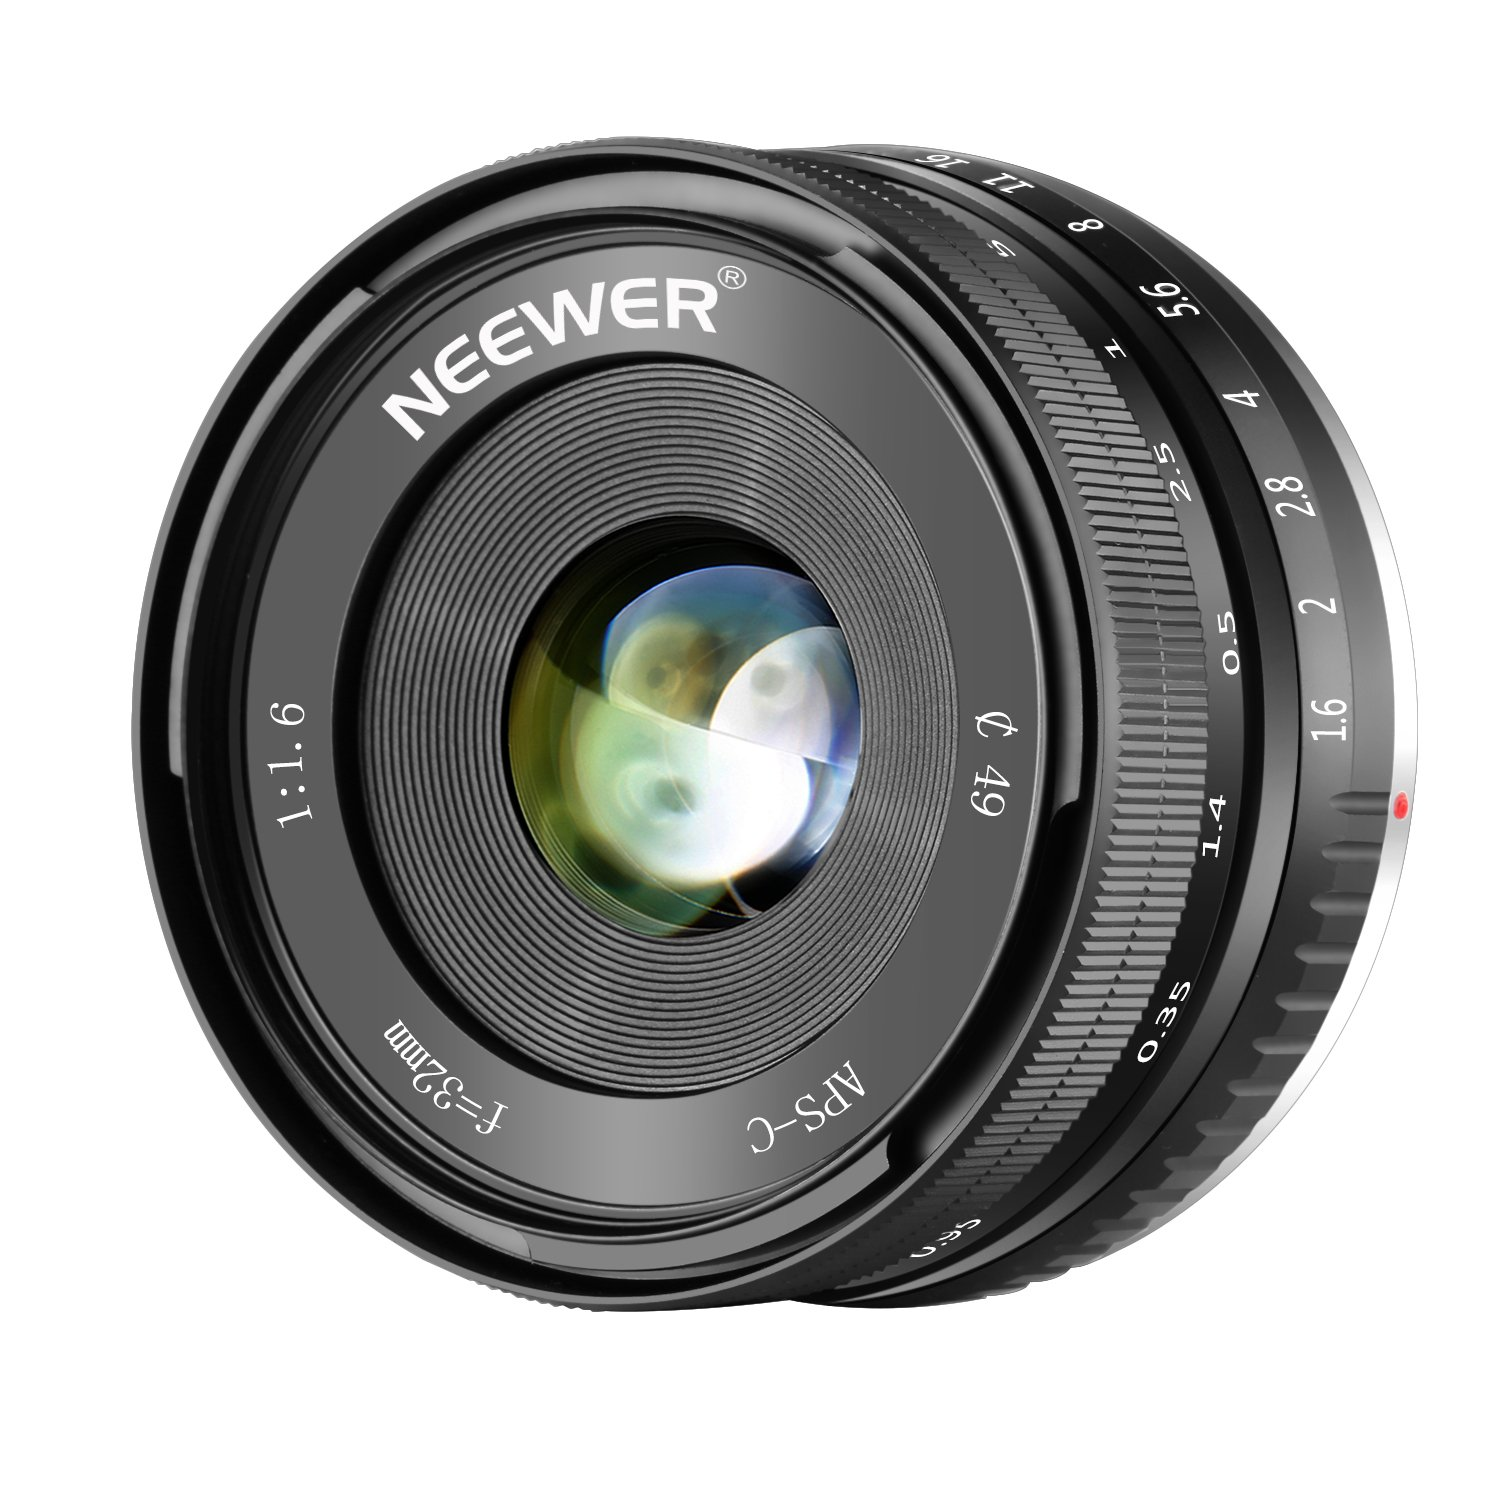 Neewer 32mm F/1.6 Manual Focus Prime Para Sony E-mount